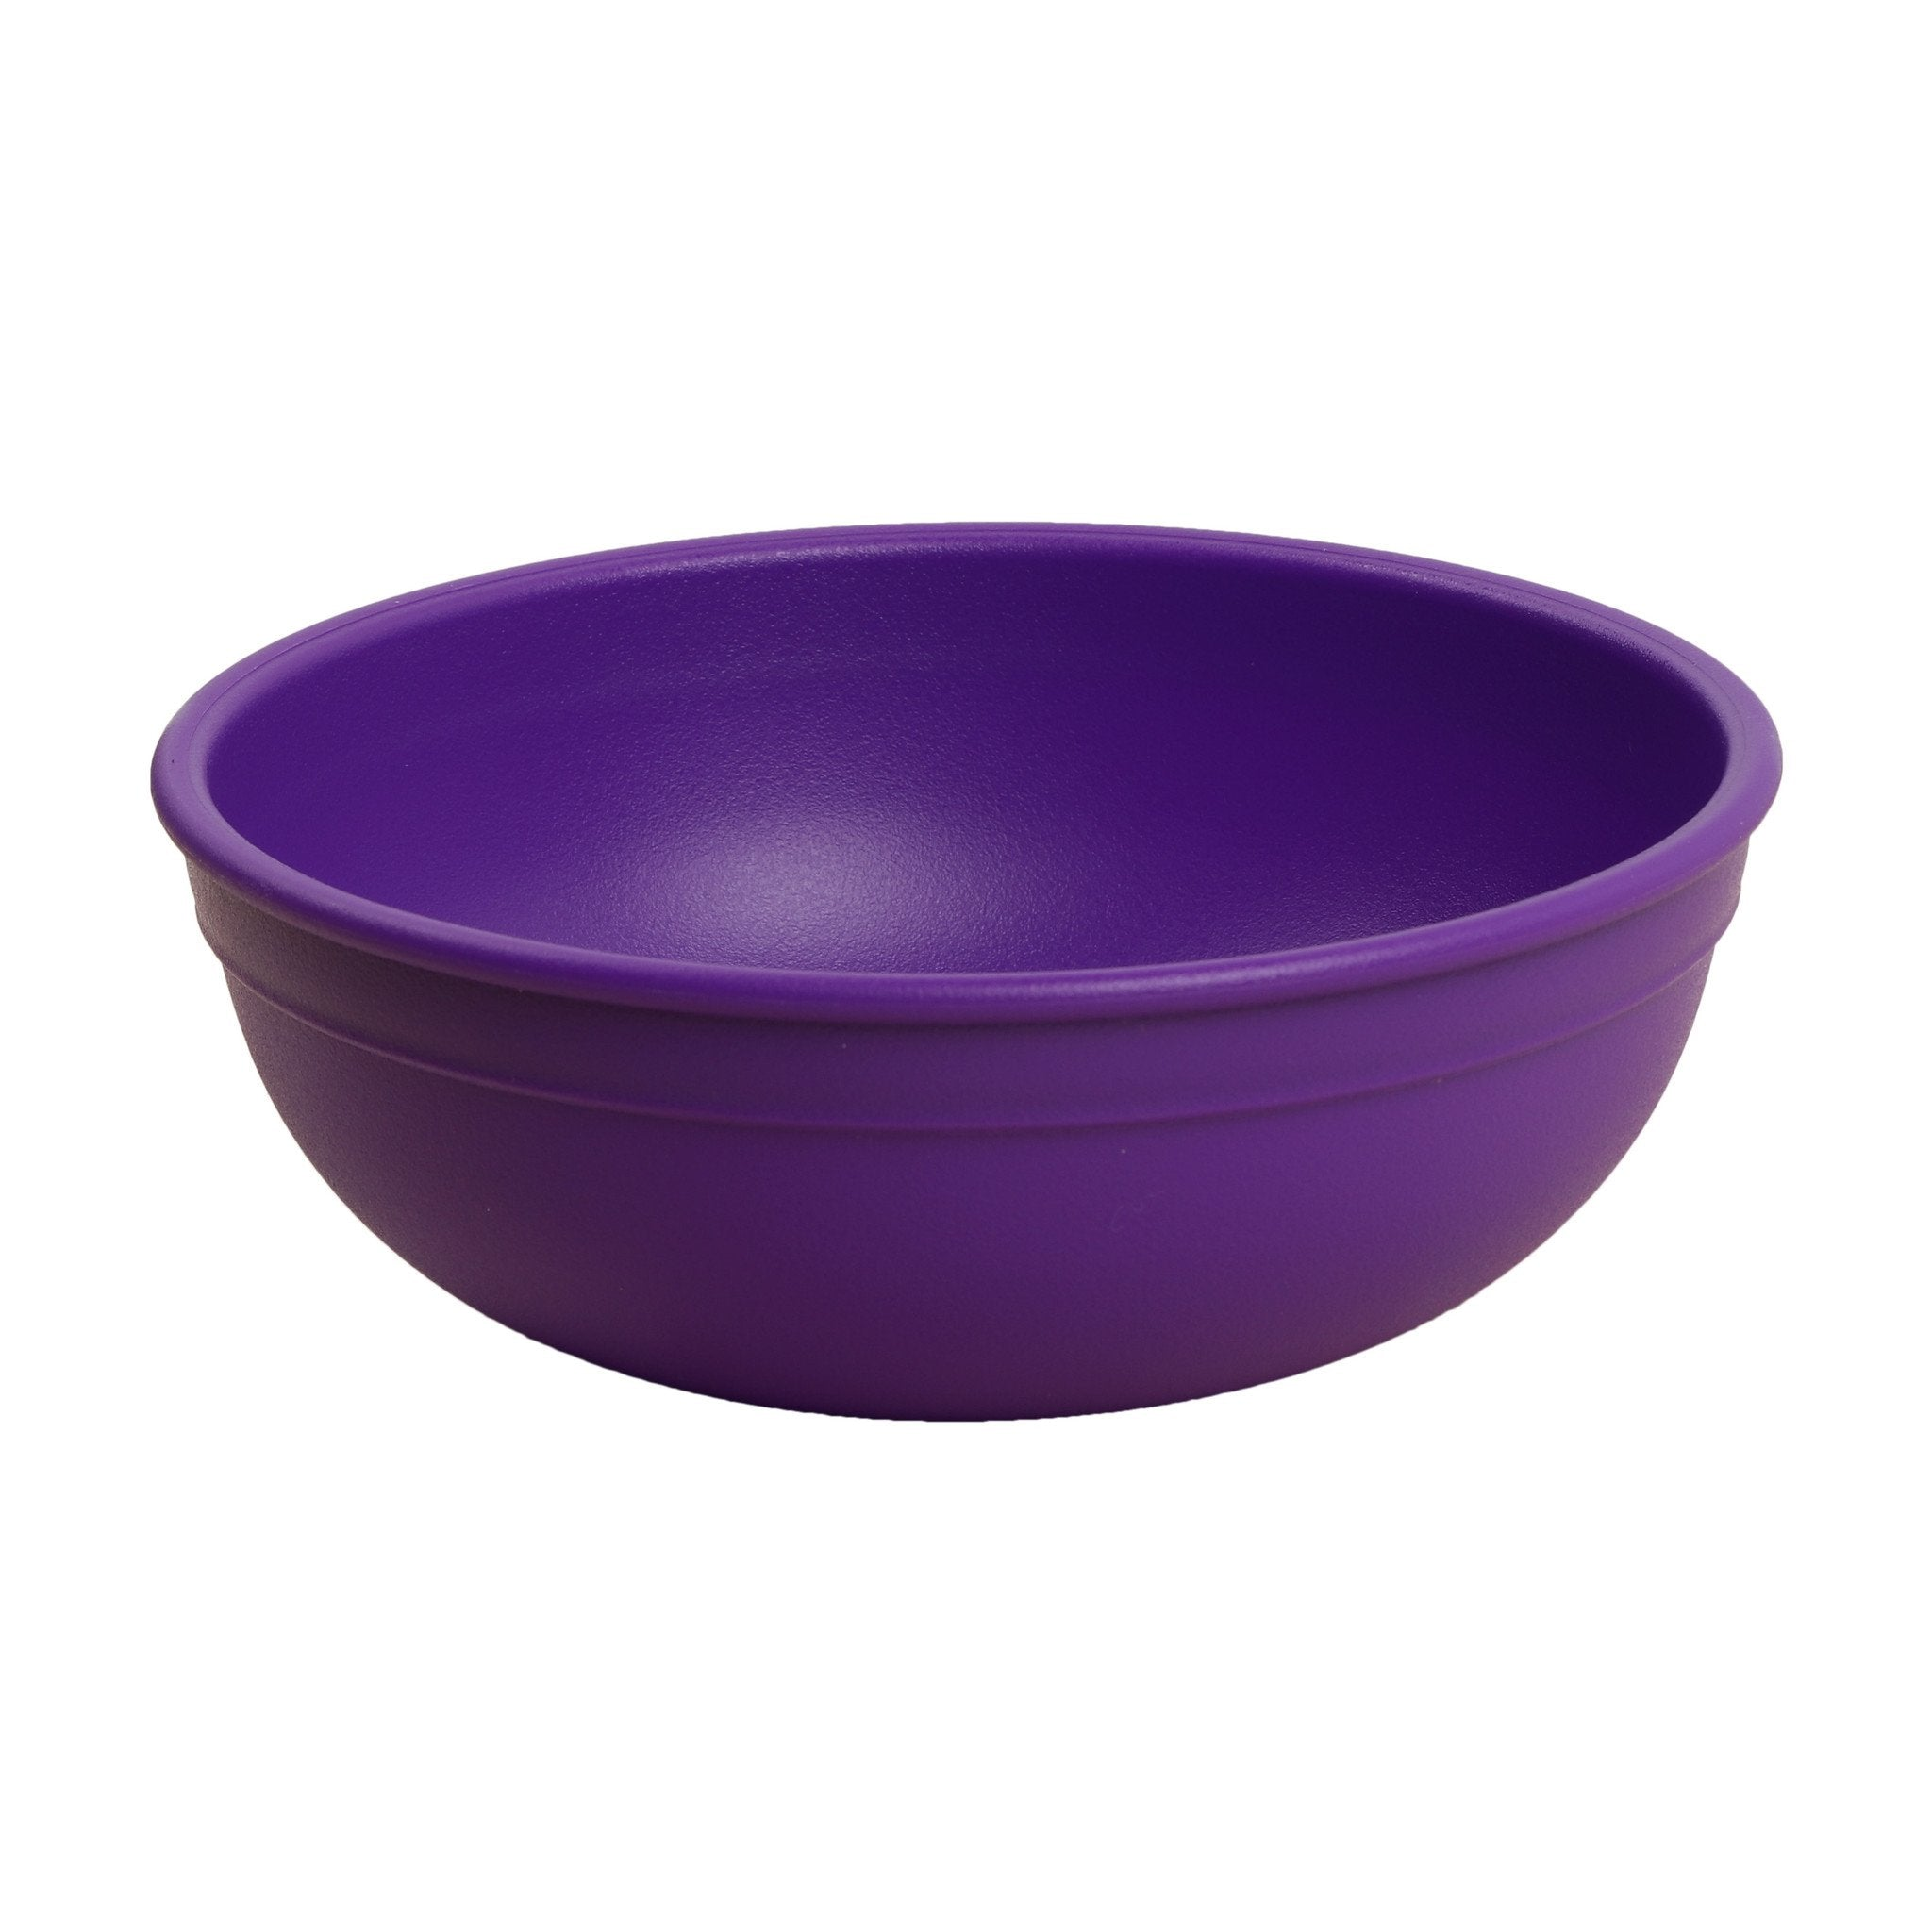 Replay Large Bowl Replay Dinnerware Amethyst at Little Earth Nest Eco Shop